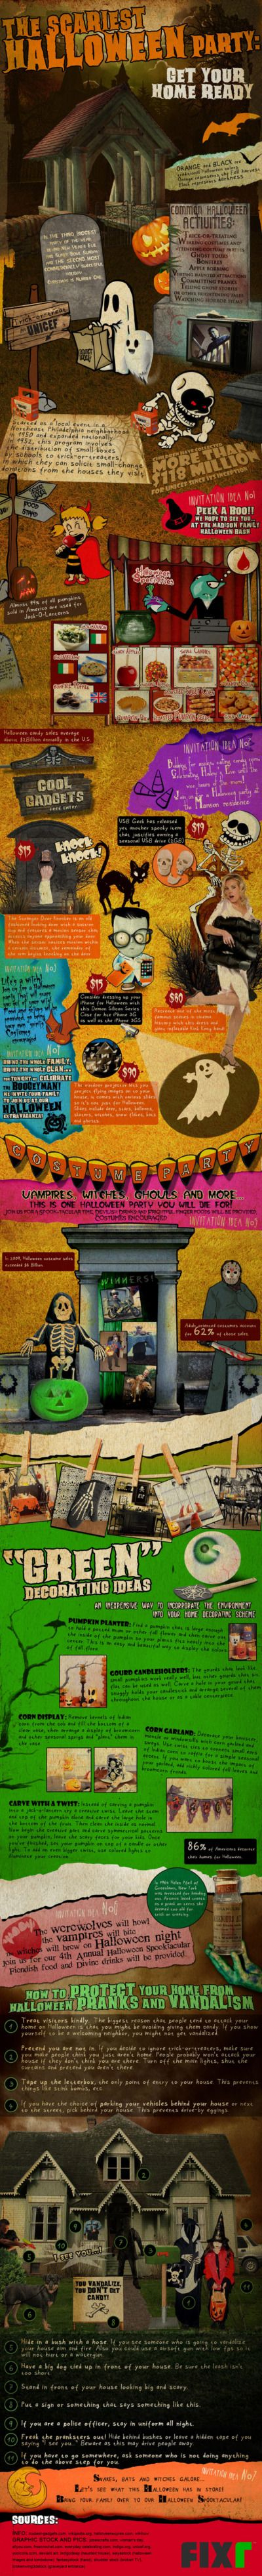 The Scariest Halloween Party - http://www.coolinfoimages.com/infographics/the-scariest-halloween-party/